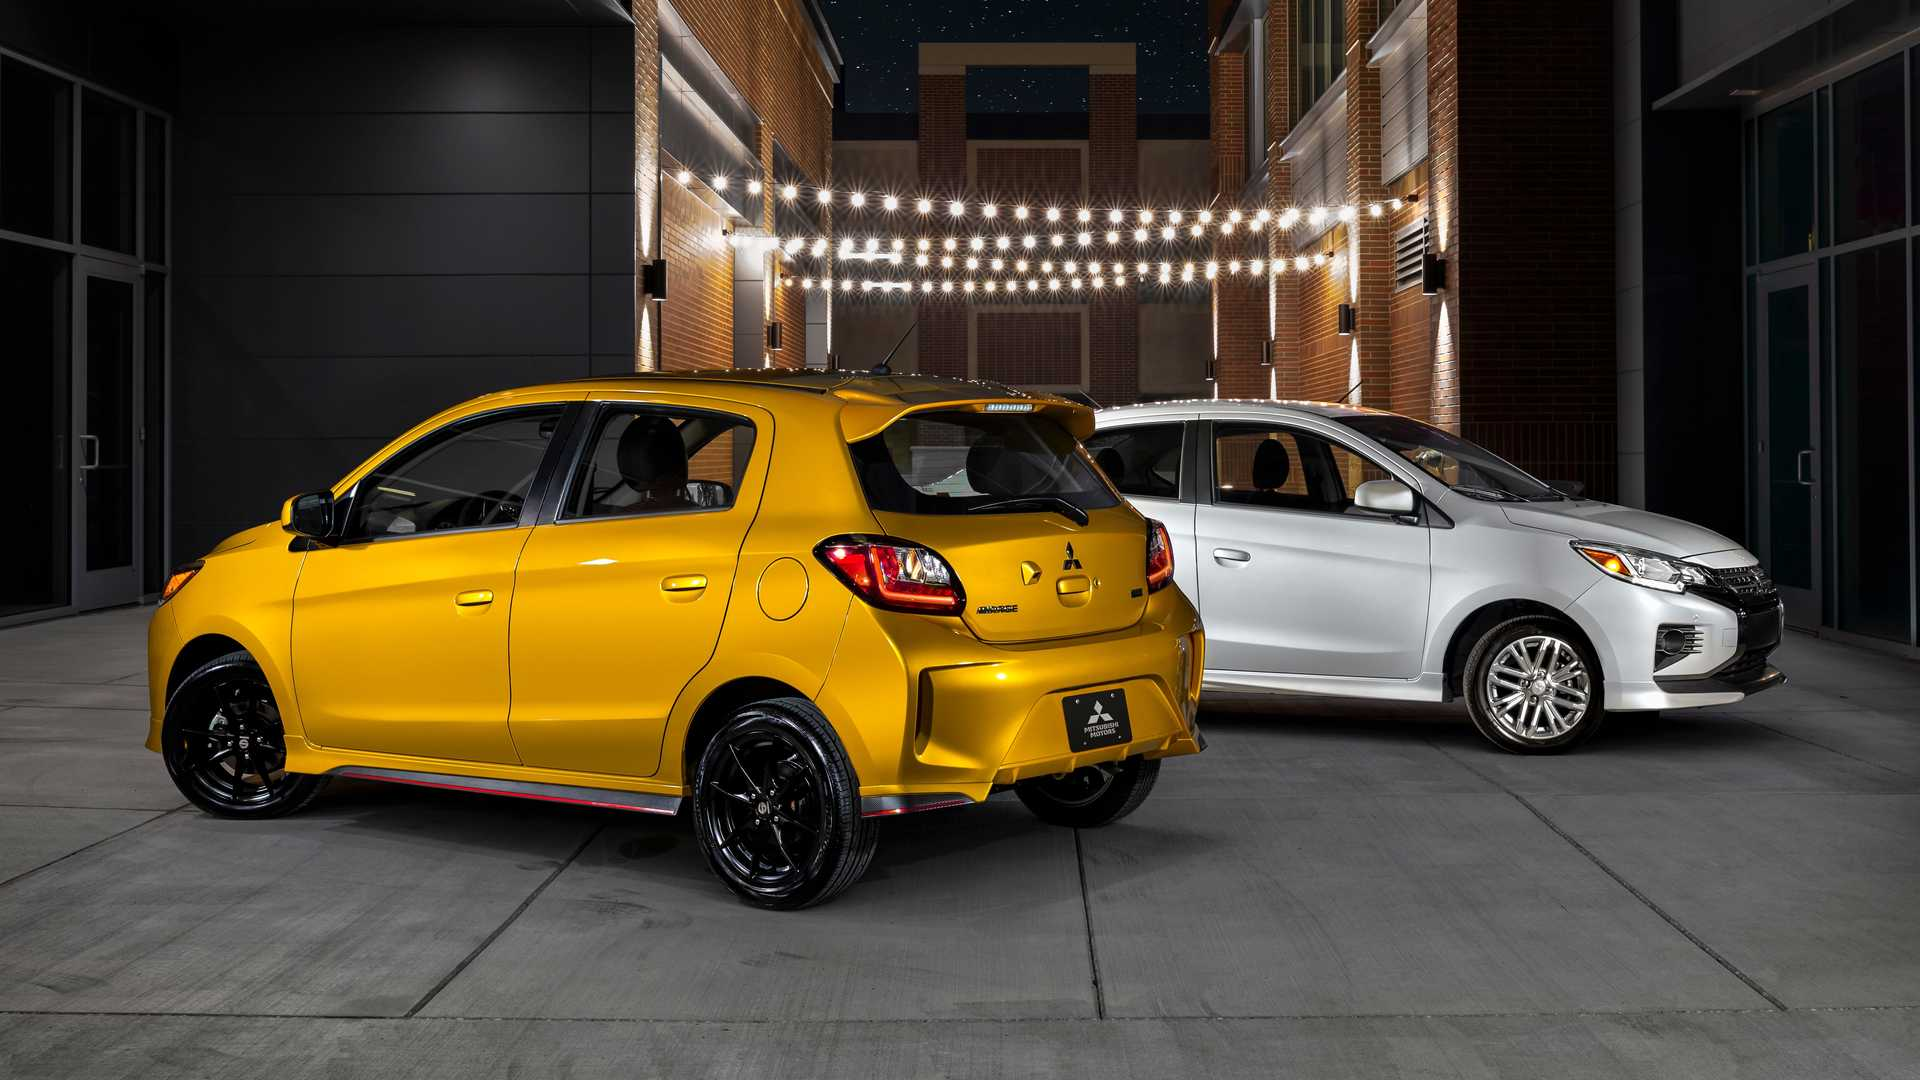 2021 mitsubishi mirage priced from $14,295, chevy spark